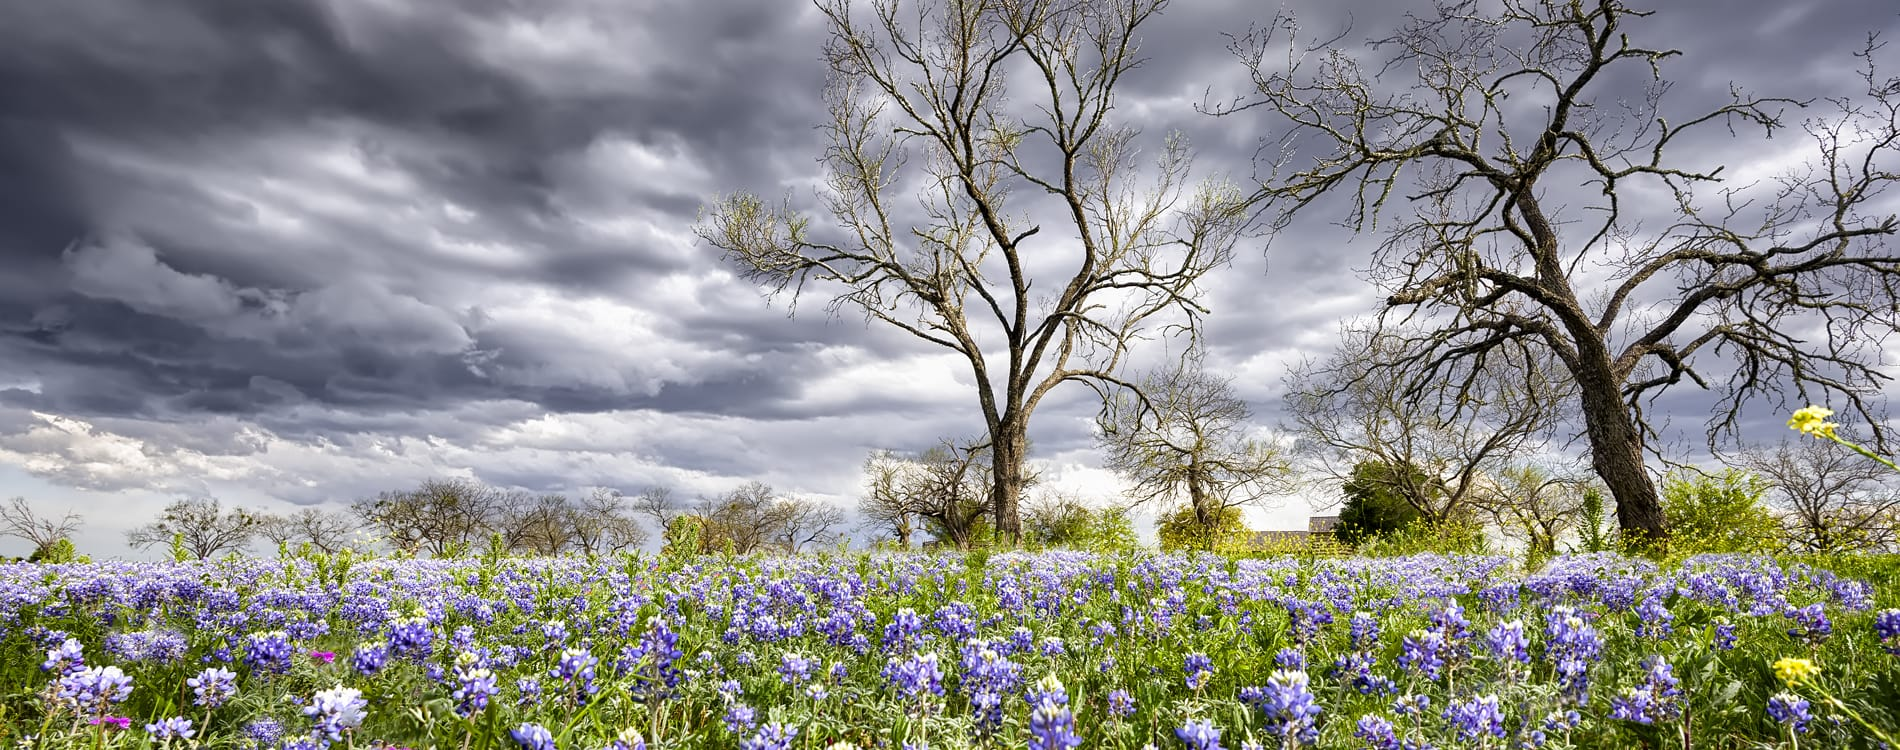 Fredericksburg, TX - Bluebonnets on a Stormy Day